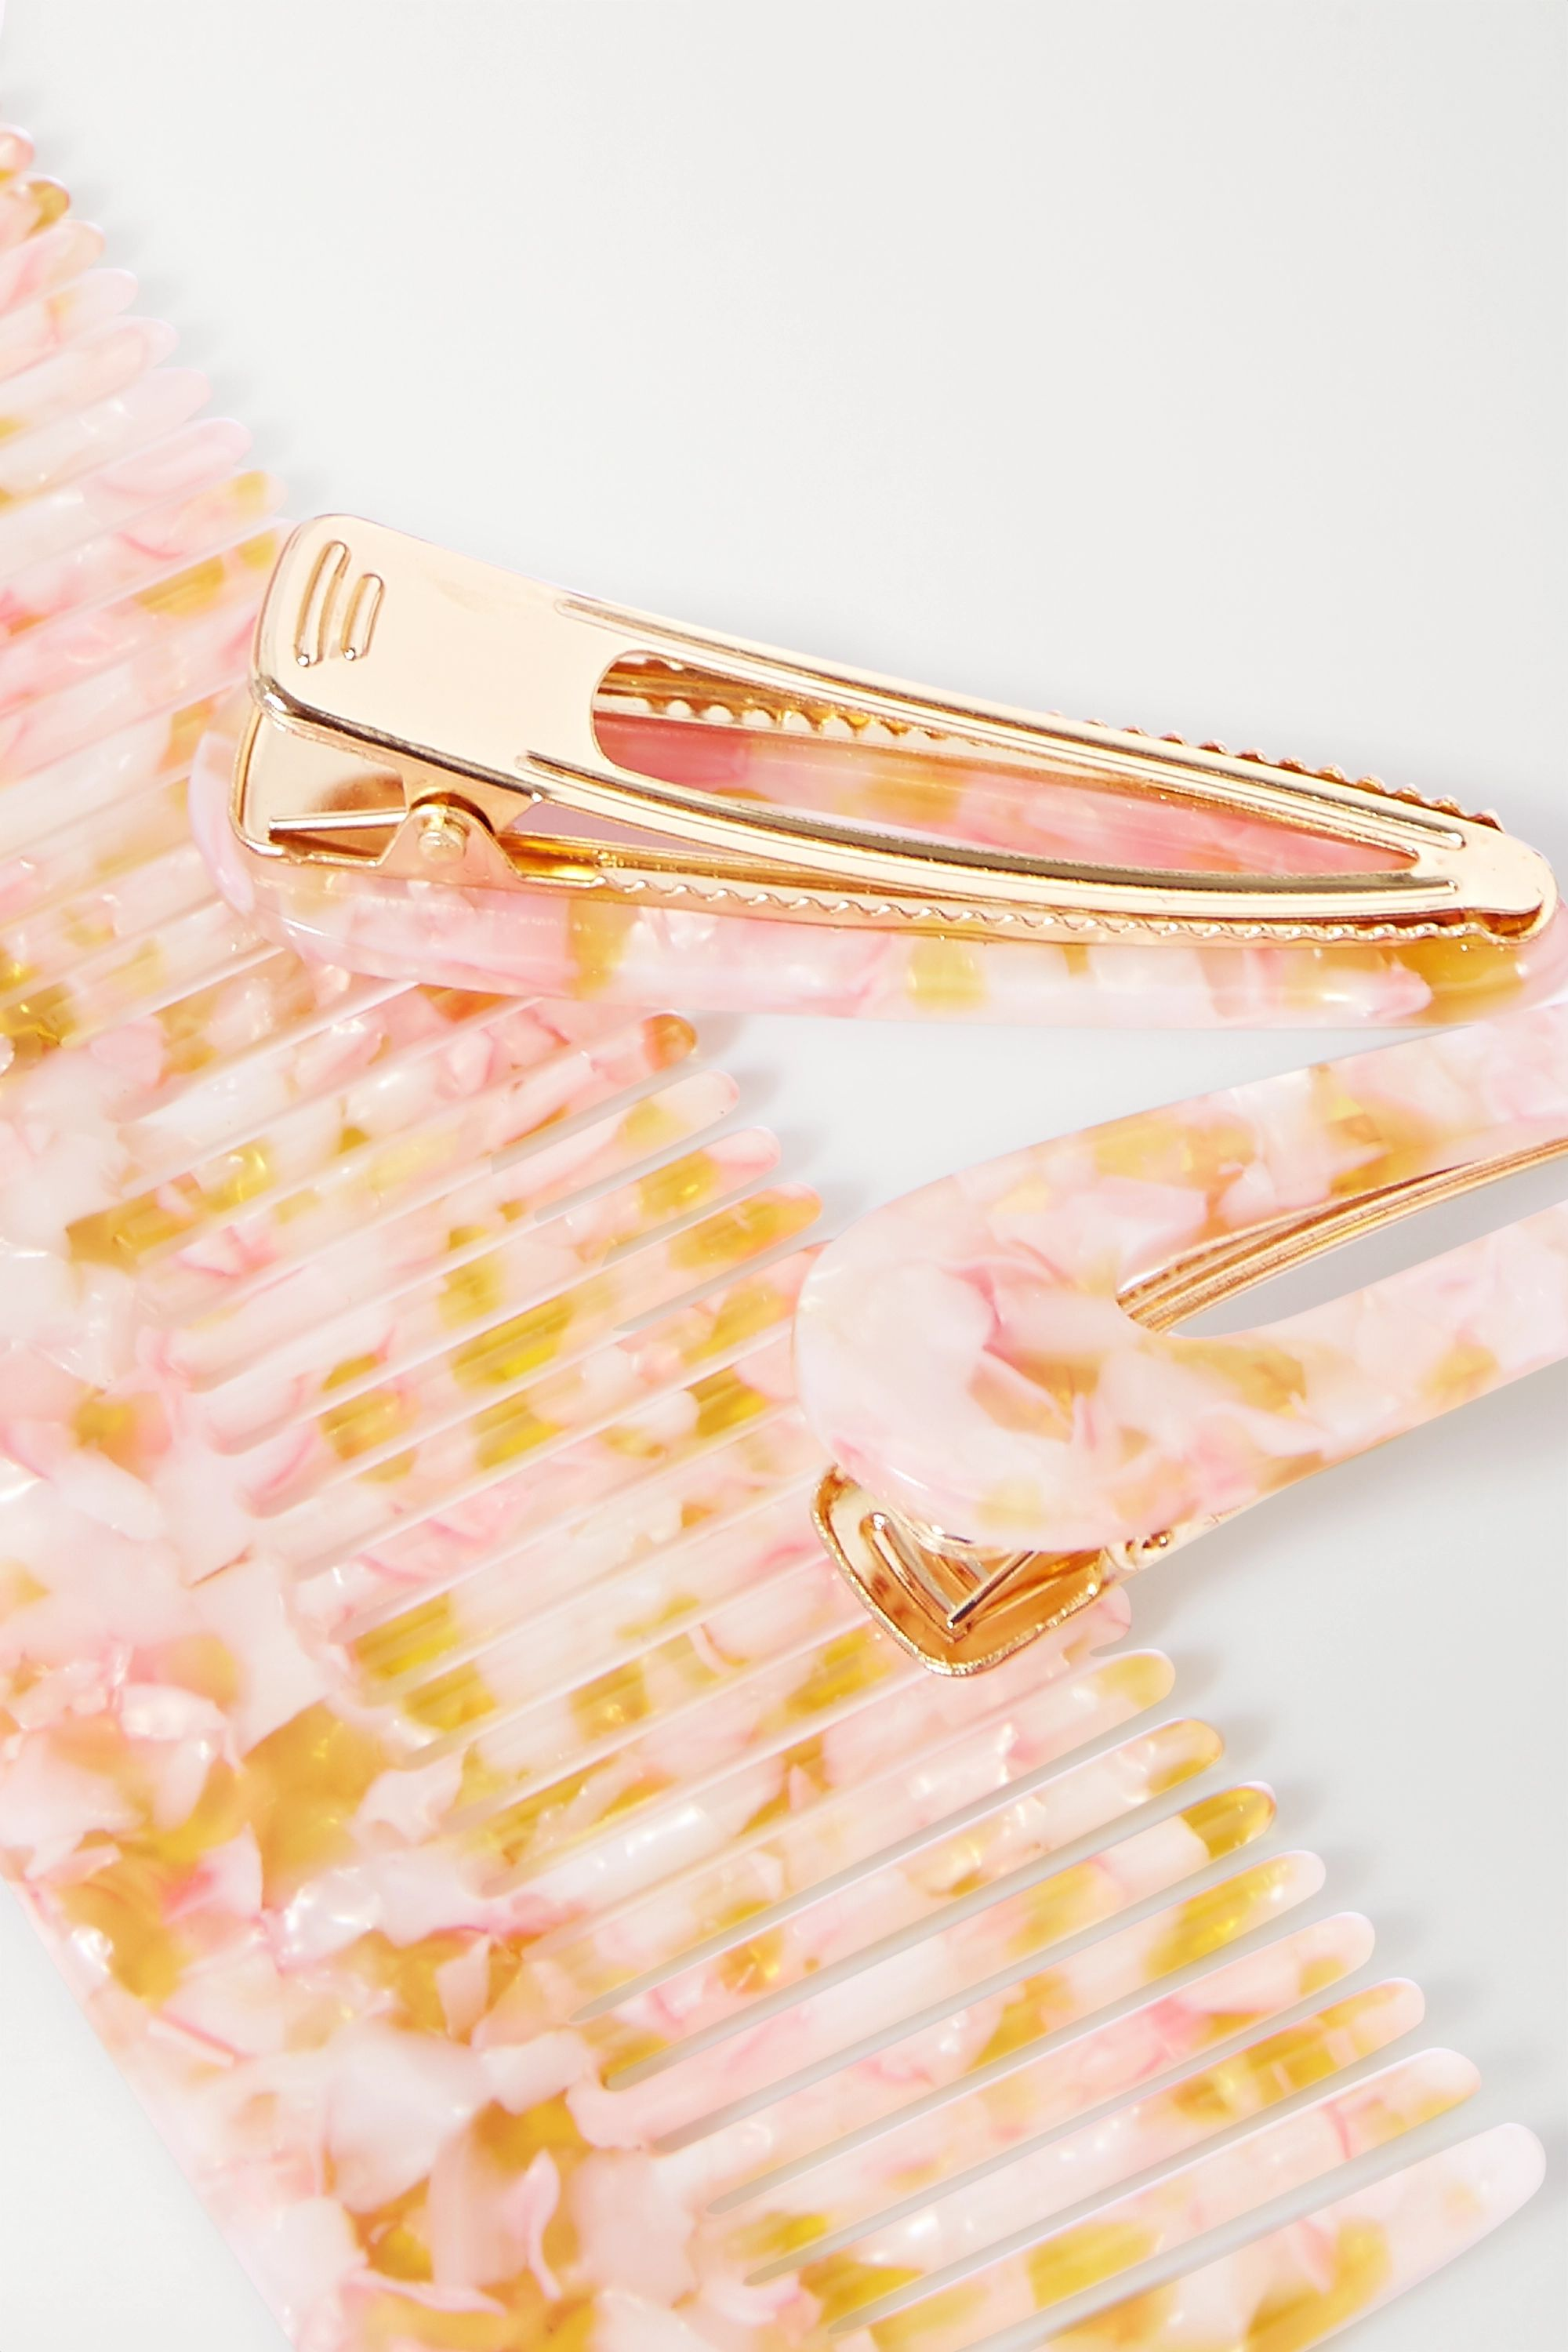 Valet Willa and Kelly marbled resin comb and hair clips set